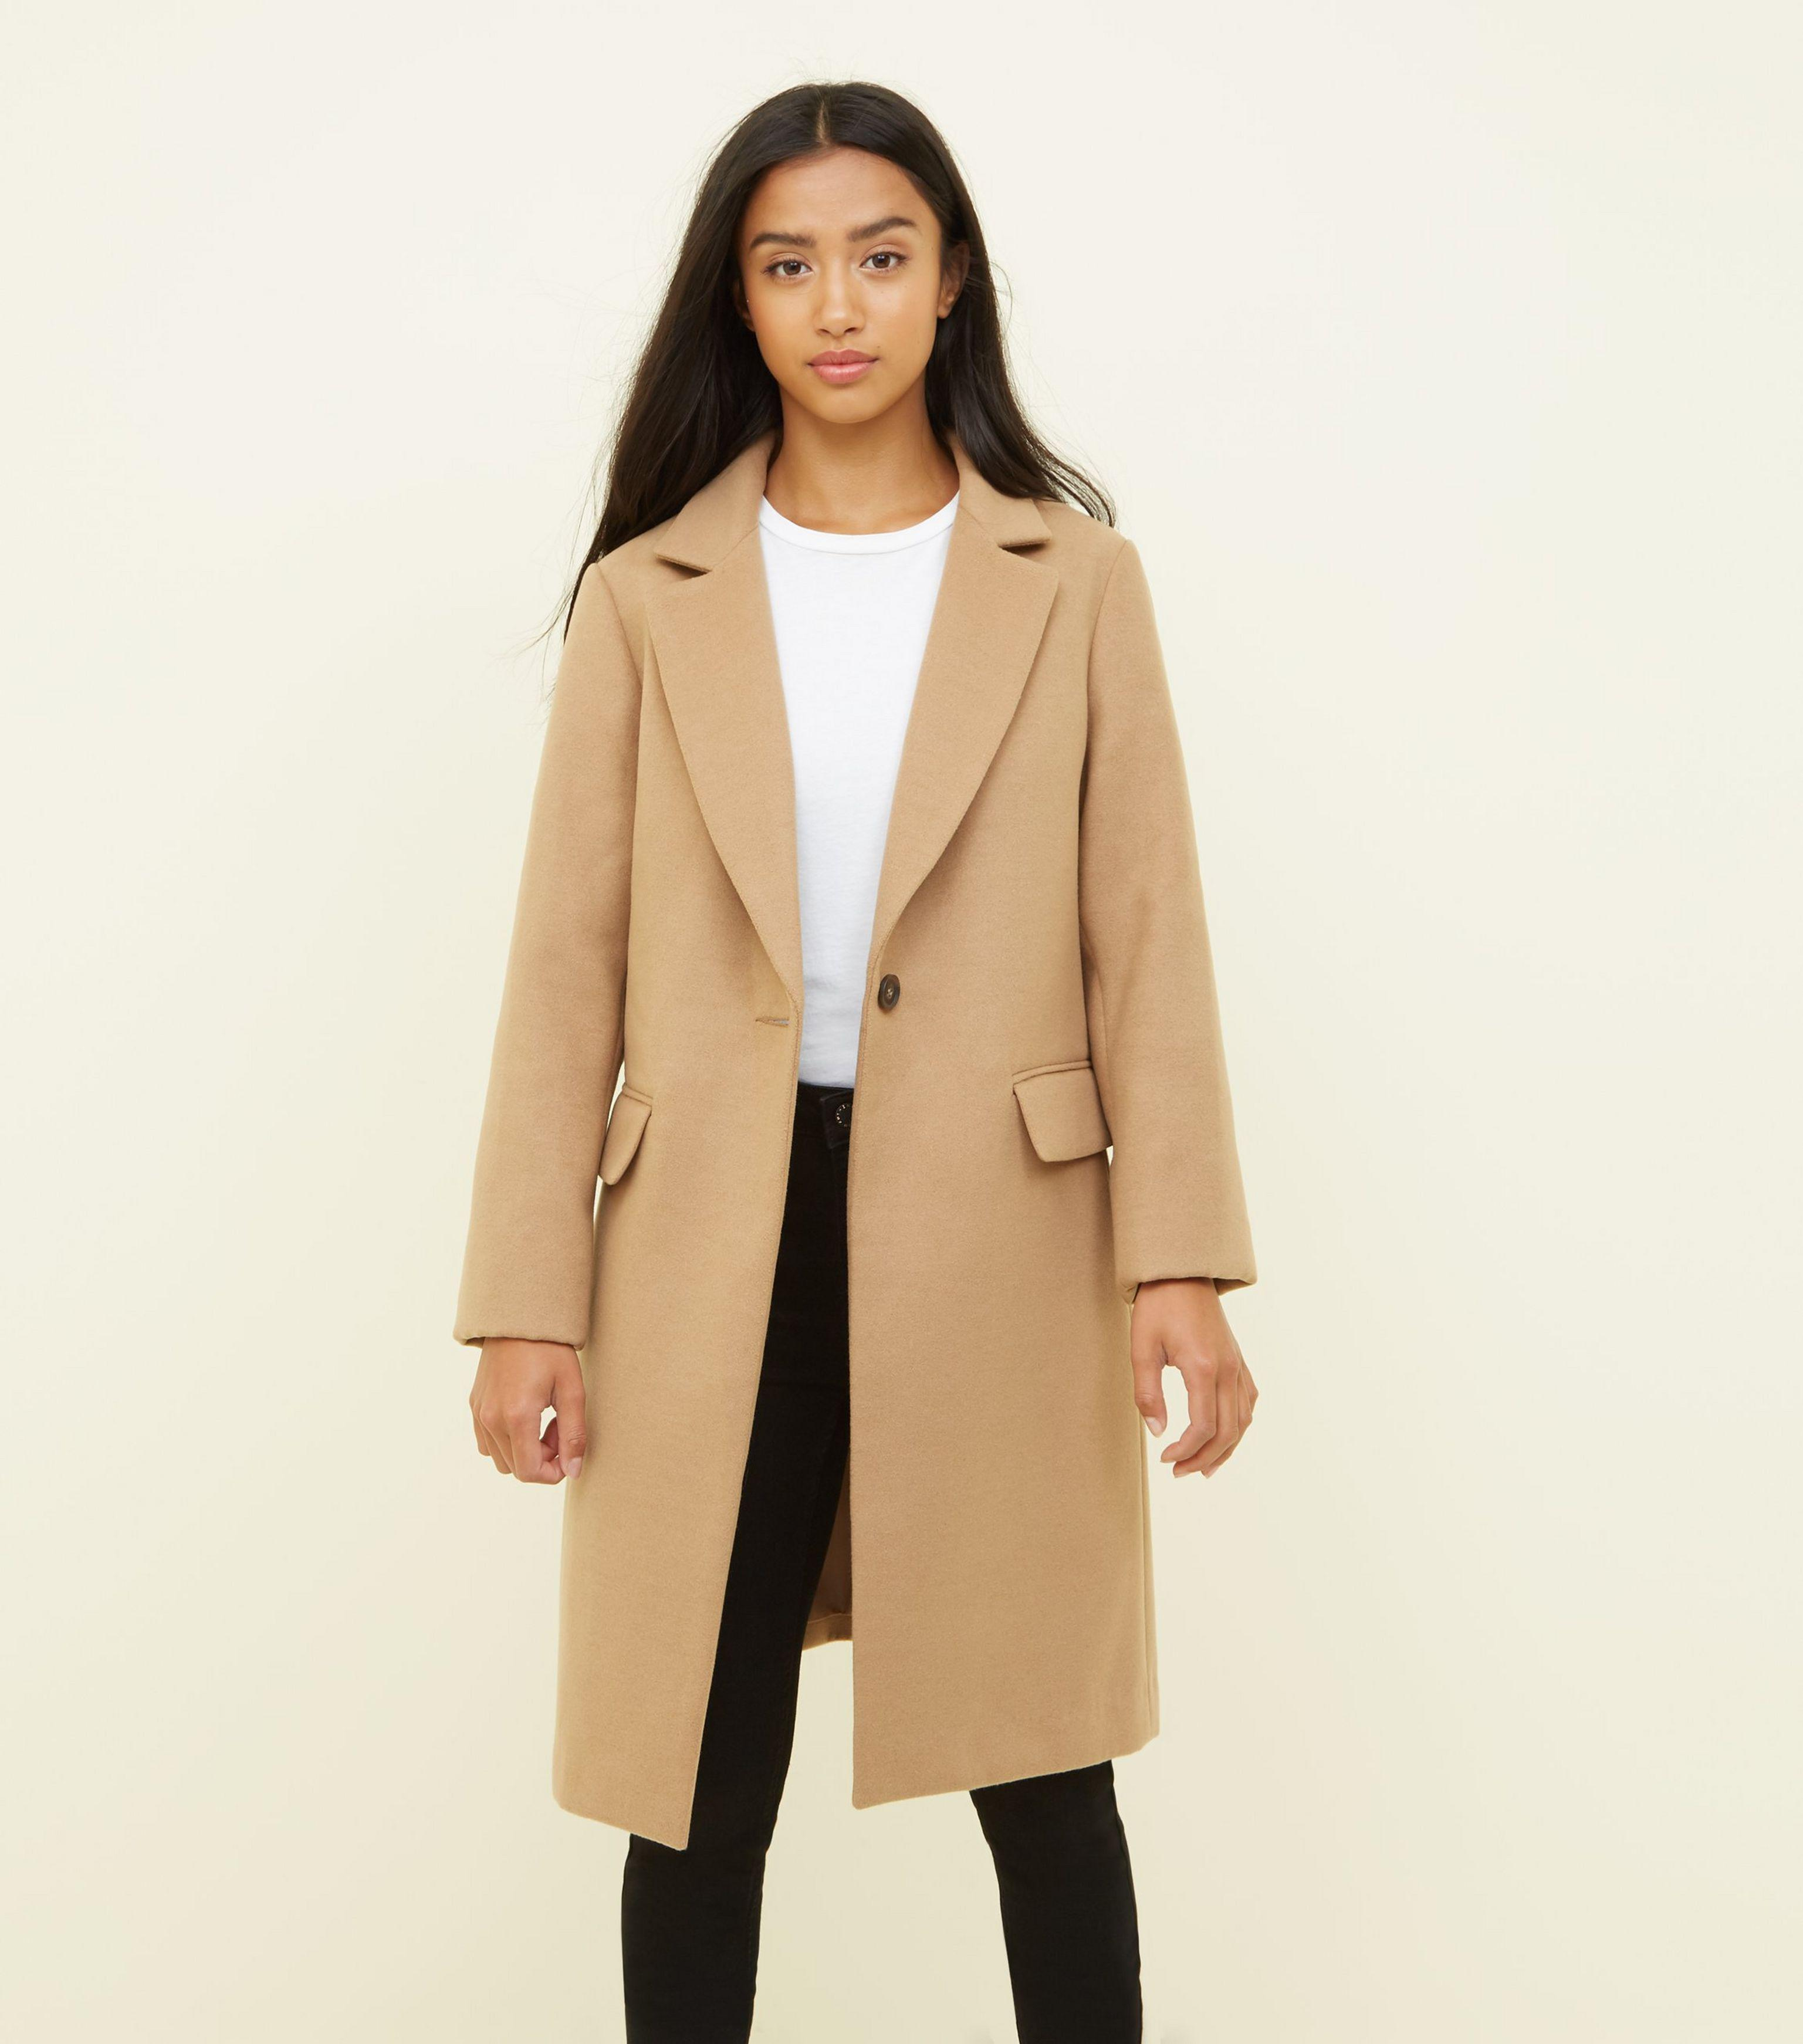 b65a6dcfe4f6 New Look Petite Camel Revere Collar Longline Coat in Natural - Lyst